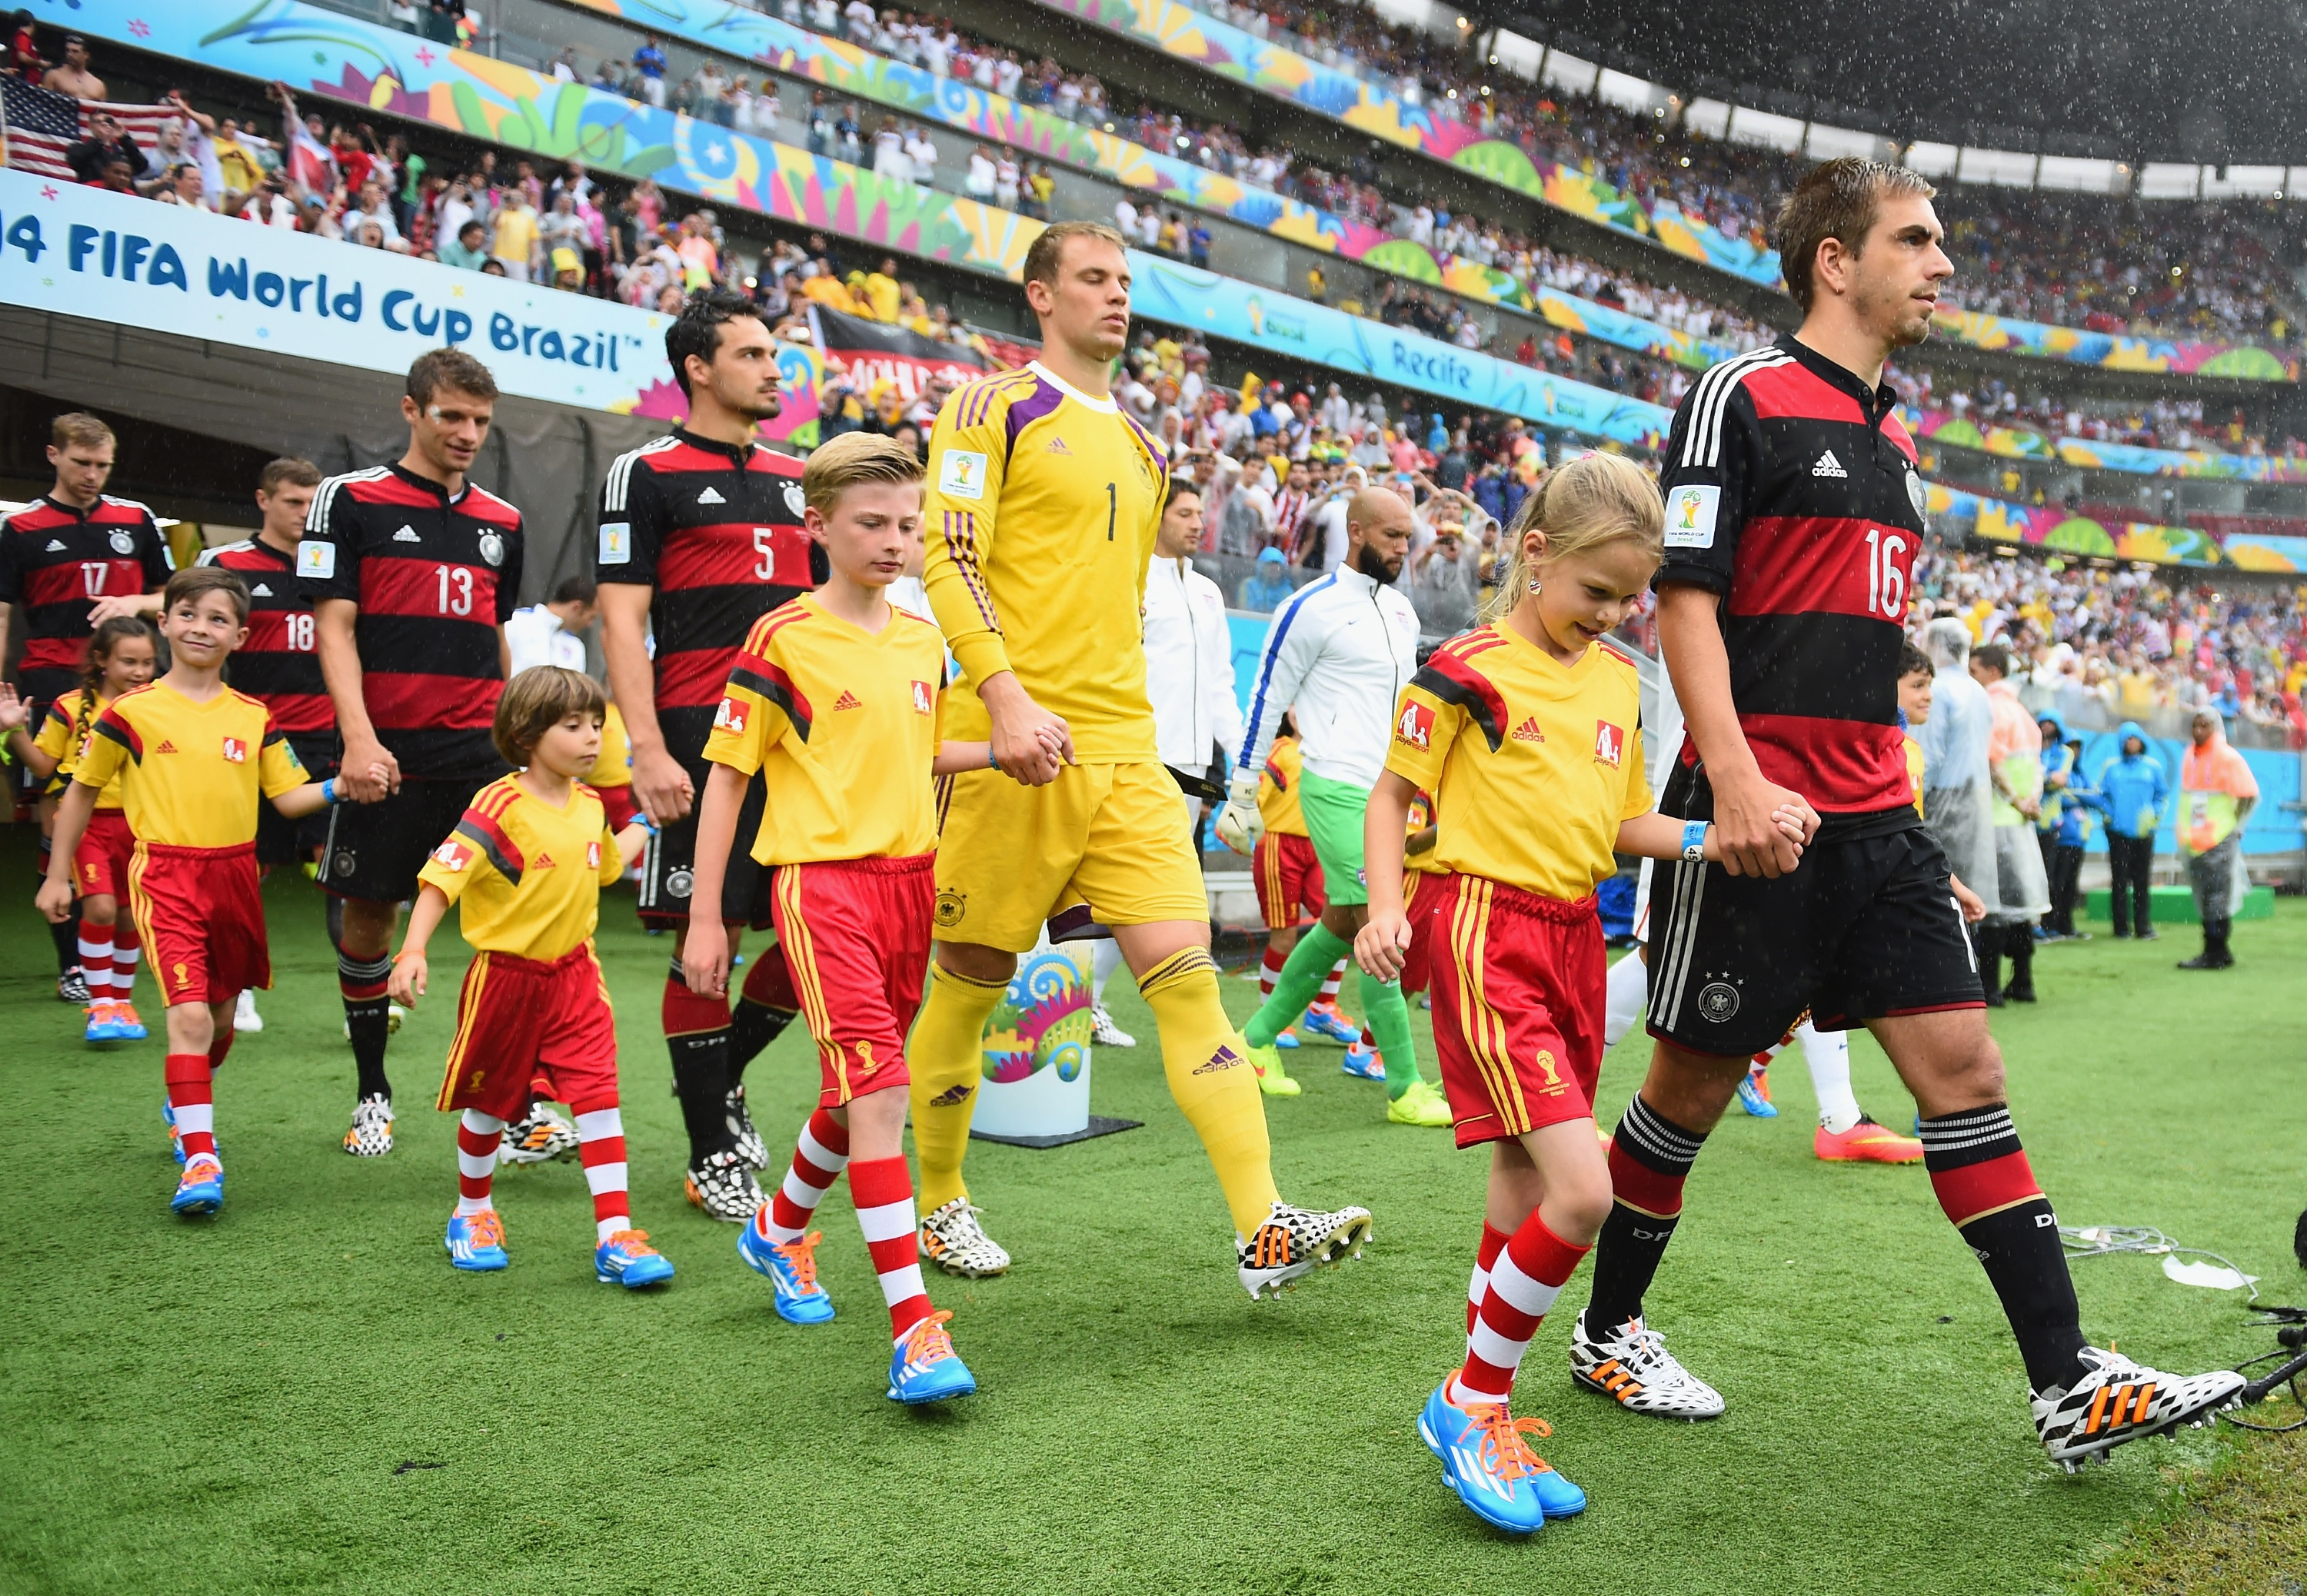 2014 FIFA World Cup: USA advances despite 0-1 loss to Germany